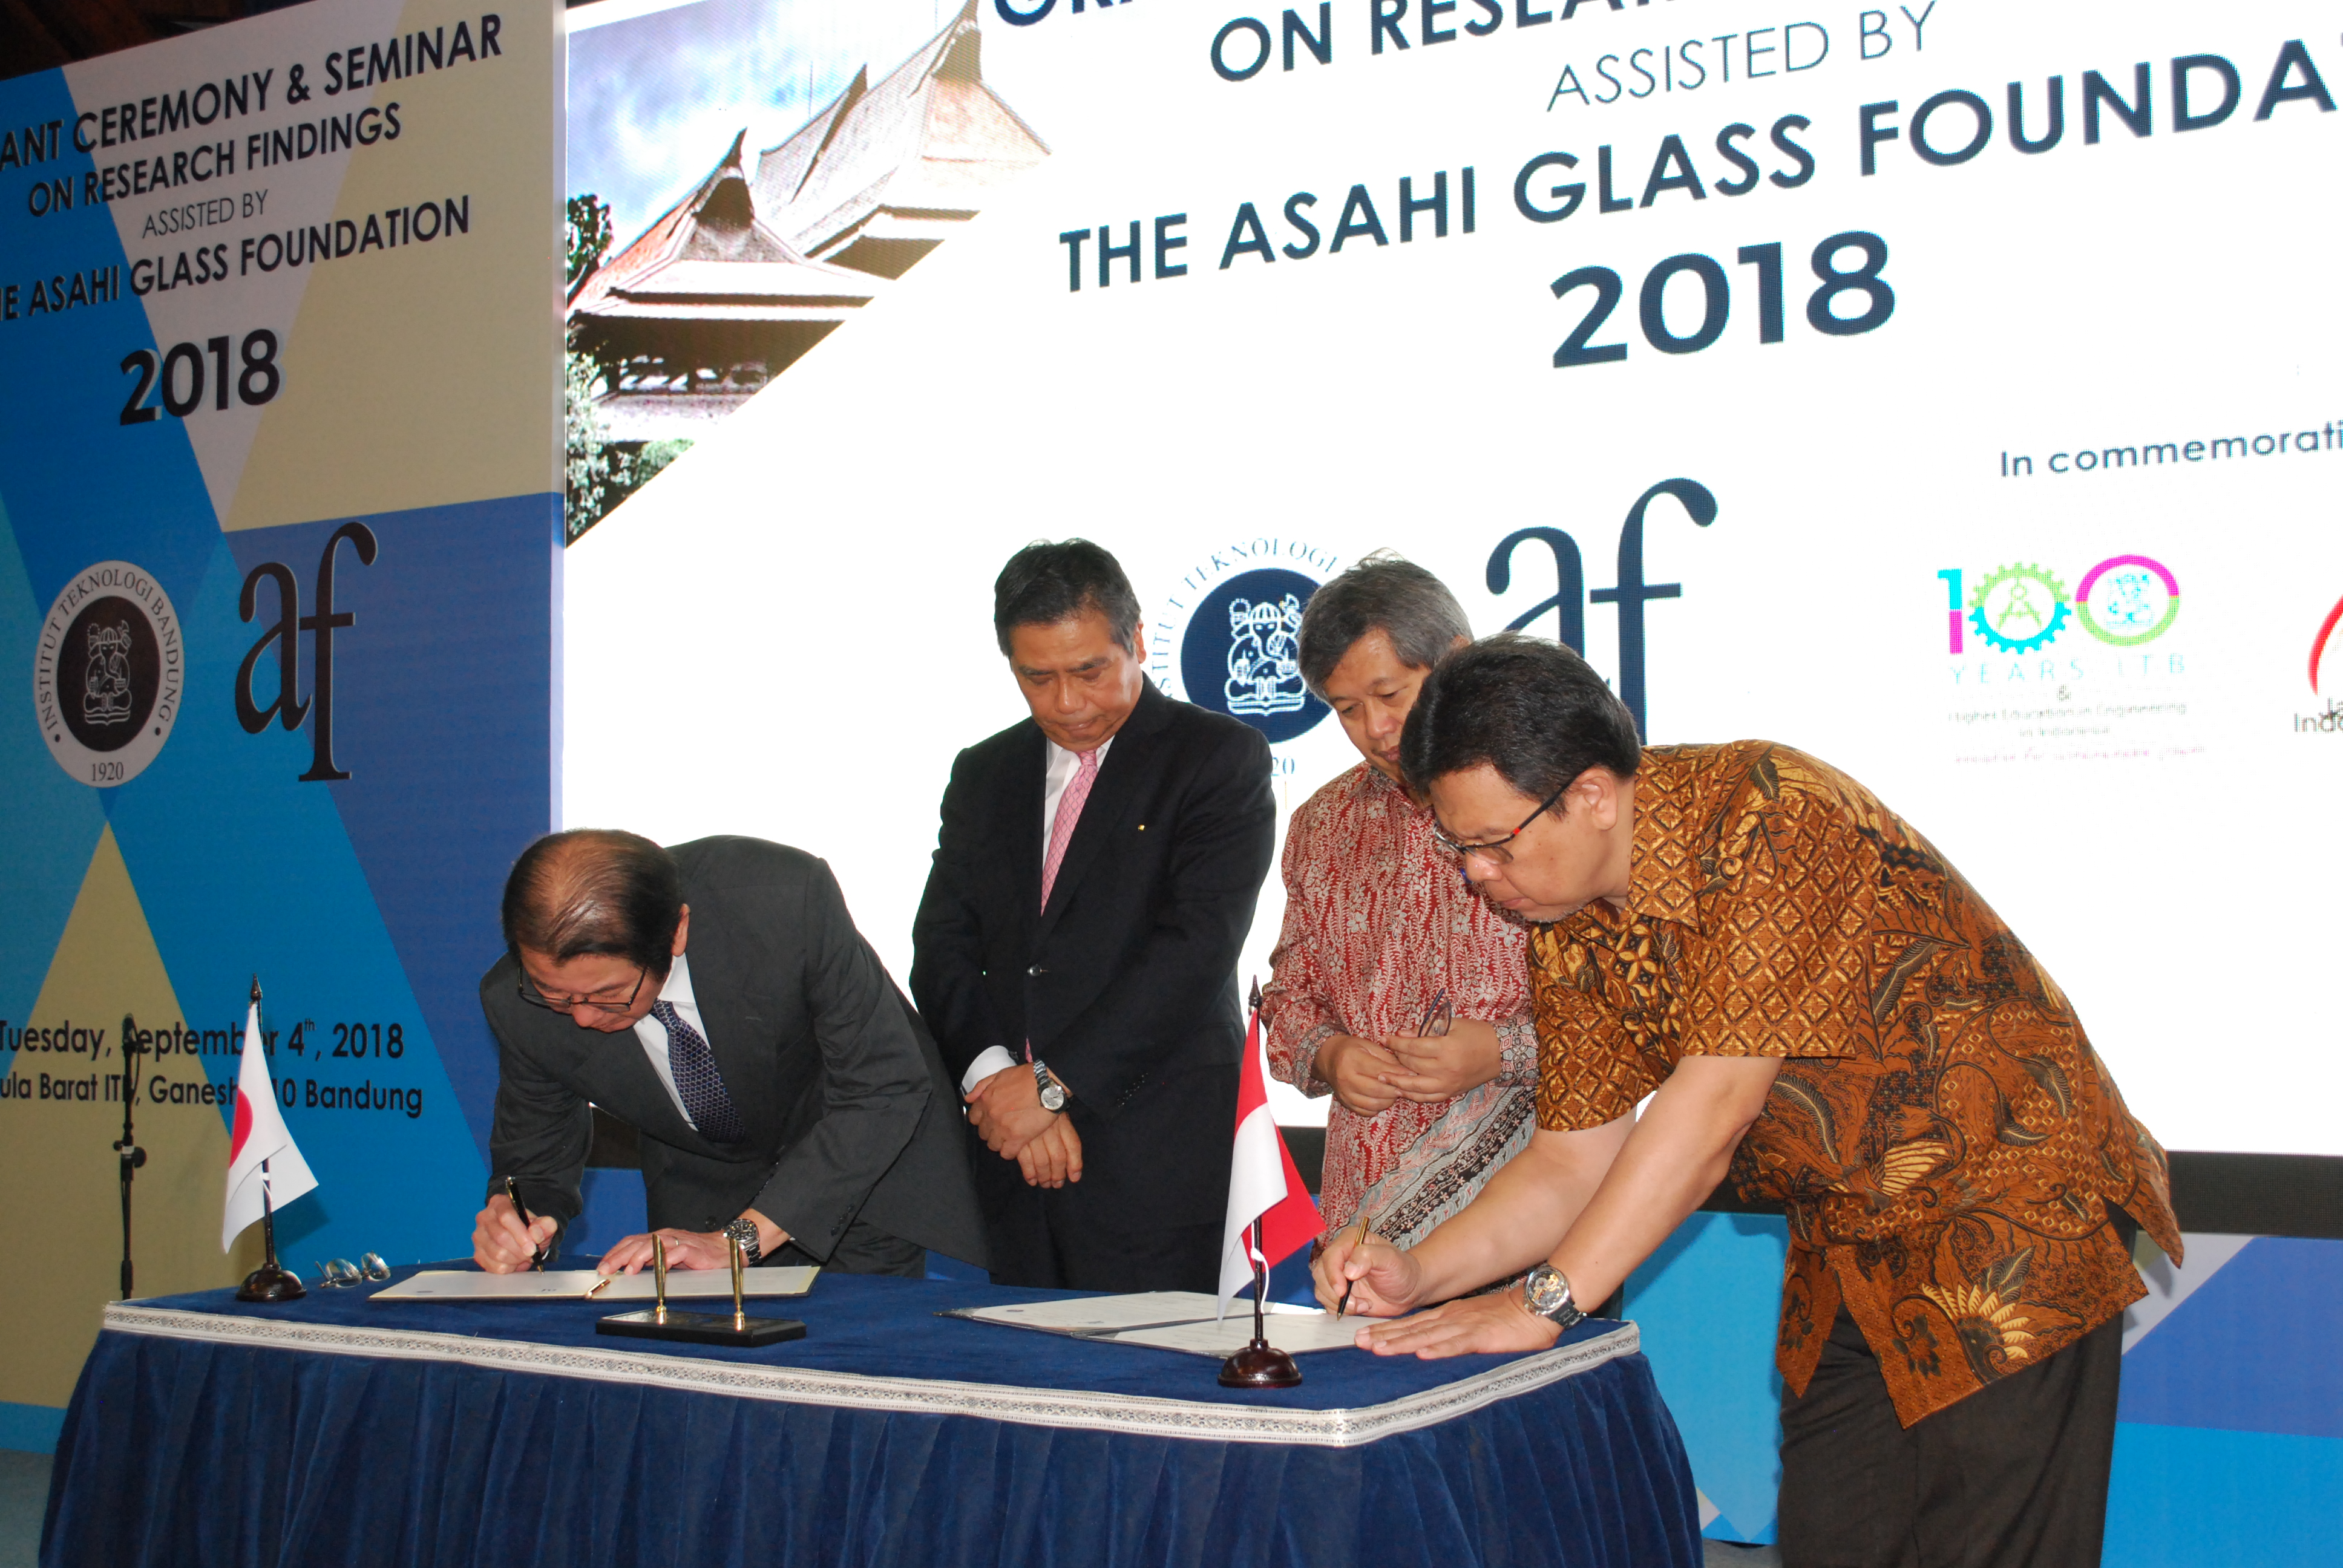 itb-and-asahi-glass-foundation-30-years-long-cooperation-in-research-and-study-development